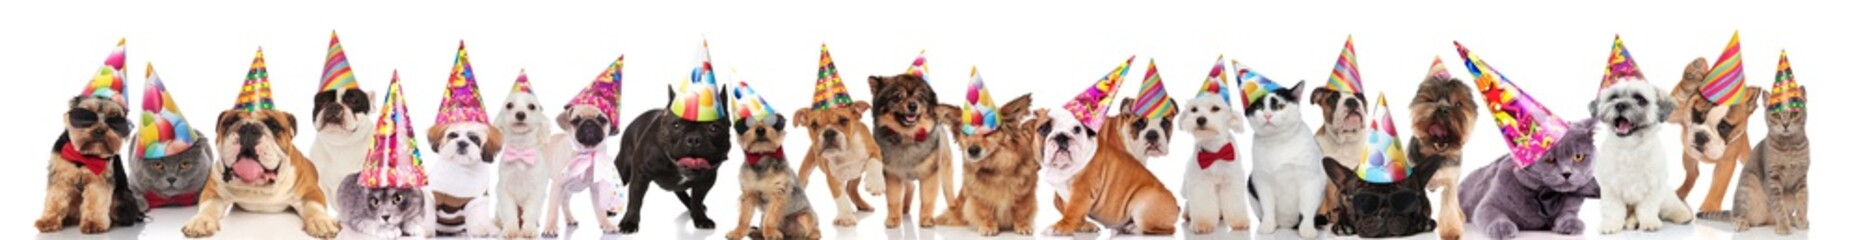 many happy pets wearing birthday hats, sunglasses and bowties